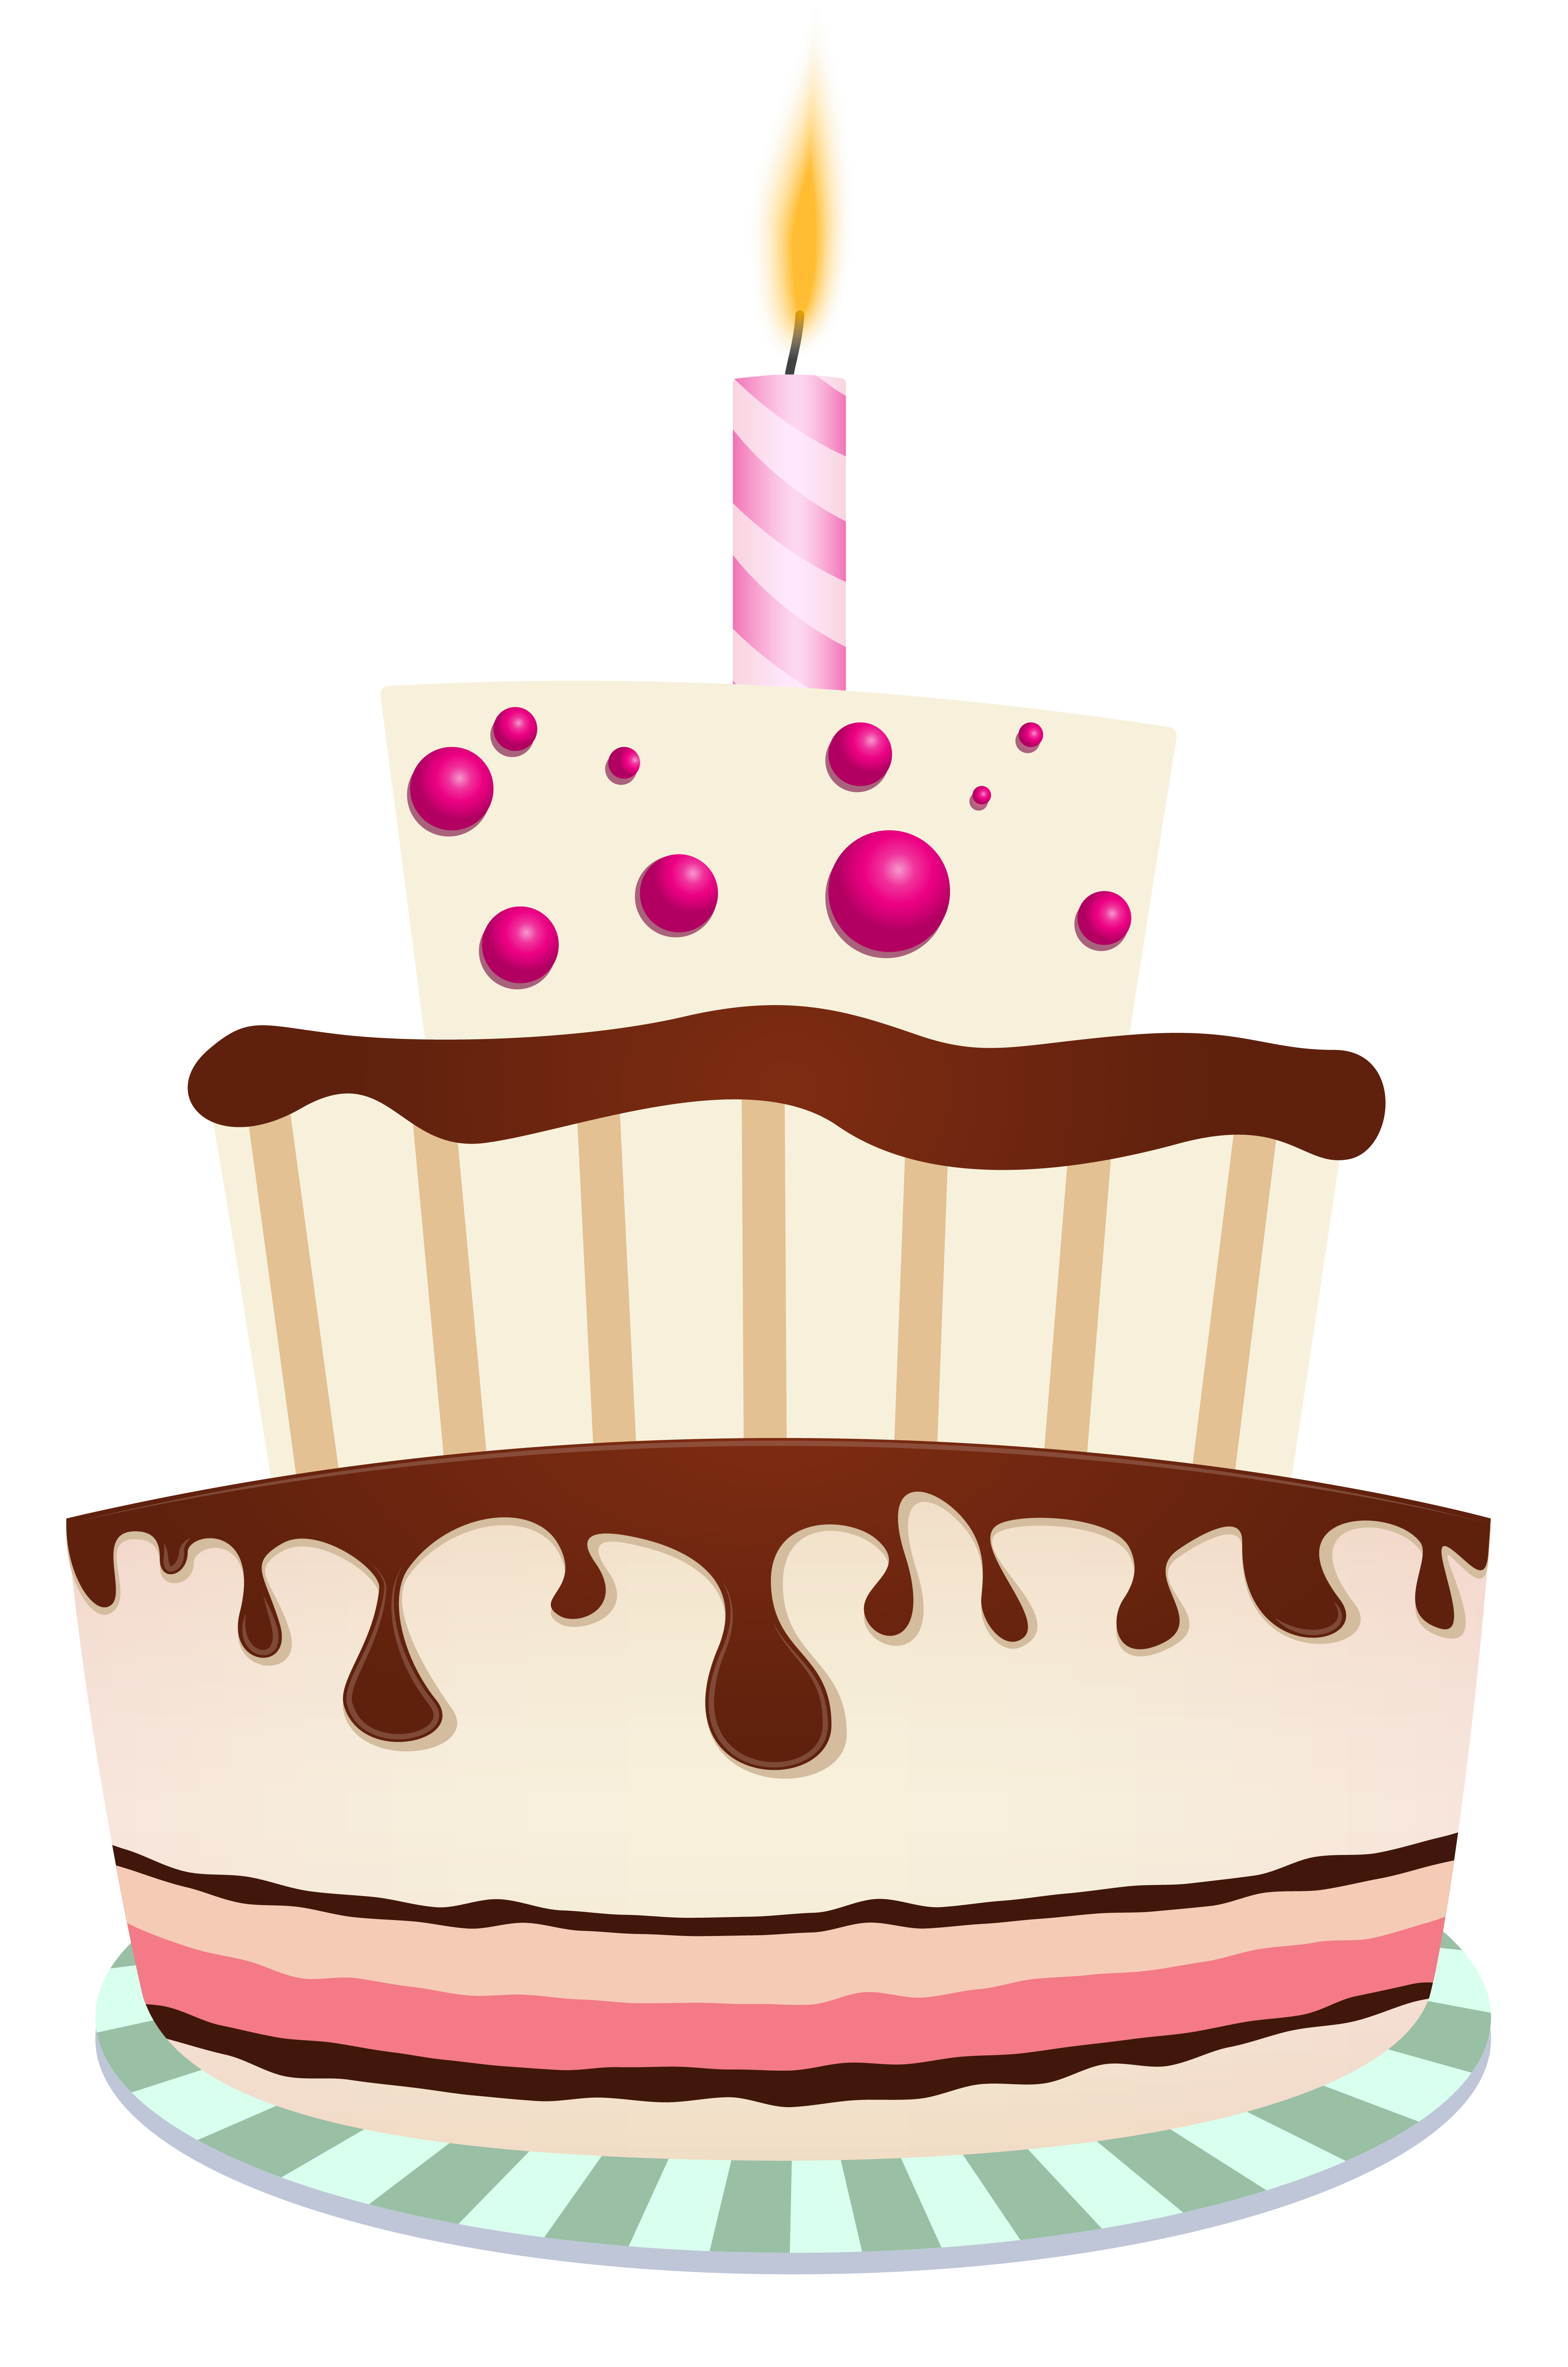 clipart freeuse stock Birthday with one candle. Beach clipart cake.